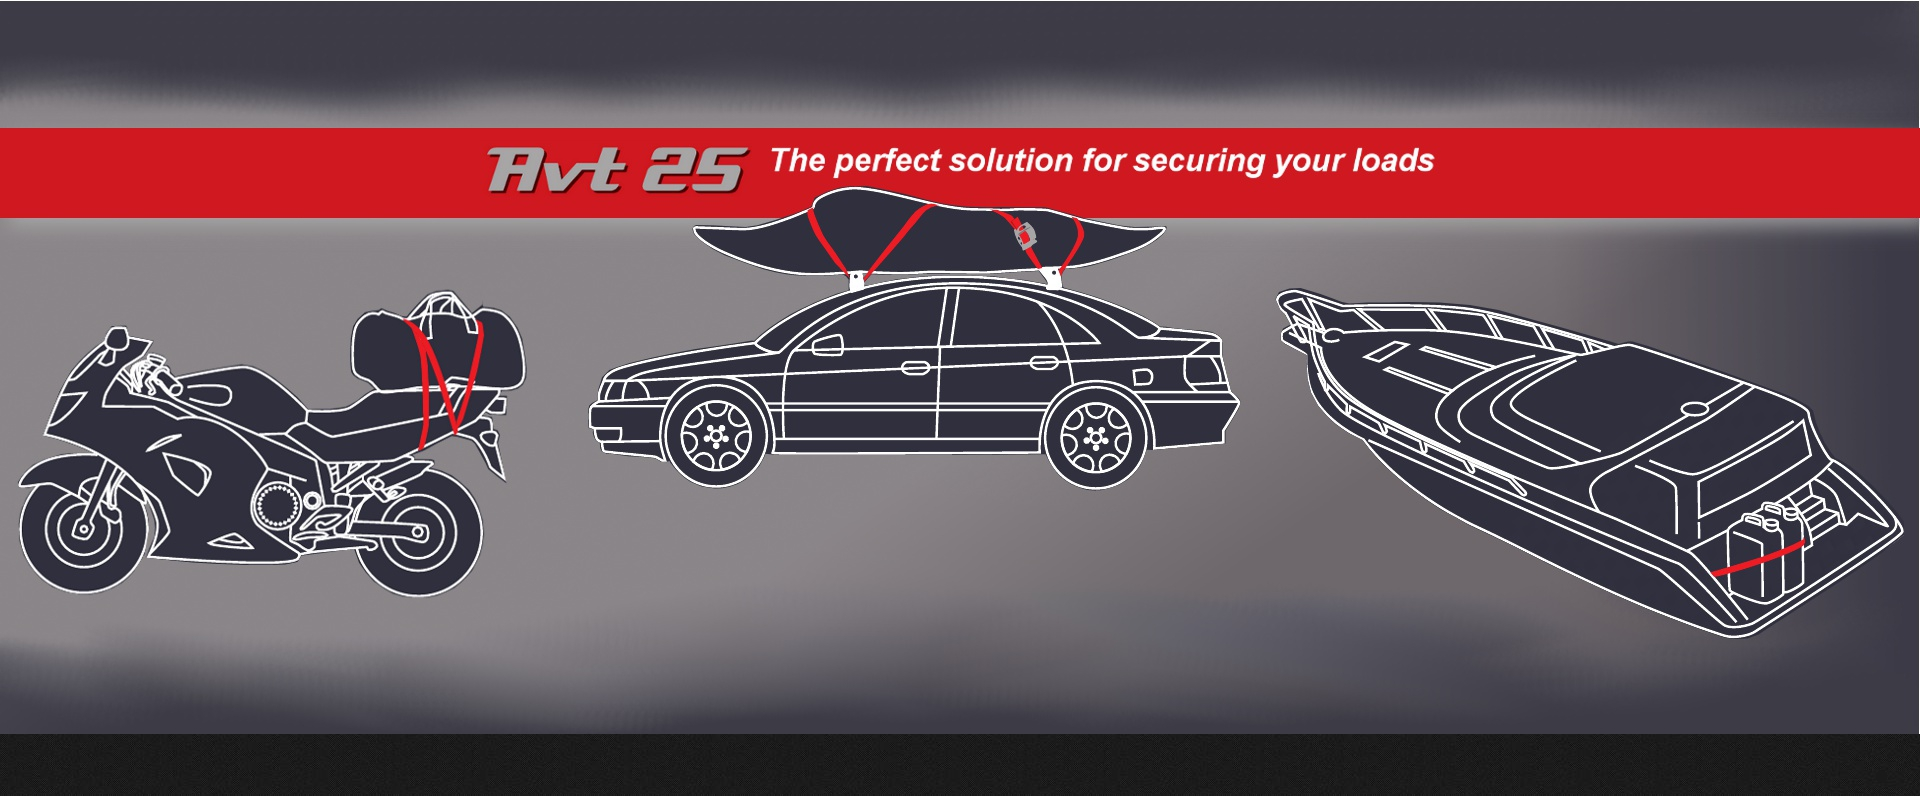 AVTENS AVT25 THE PERFECT SOLUTION TO SECURE YOUR LOAD